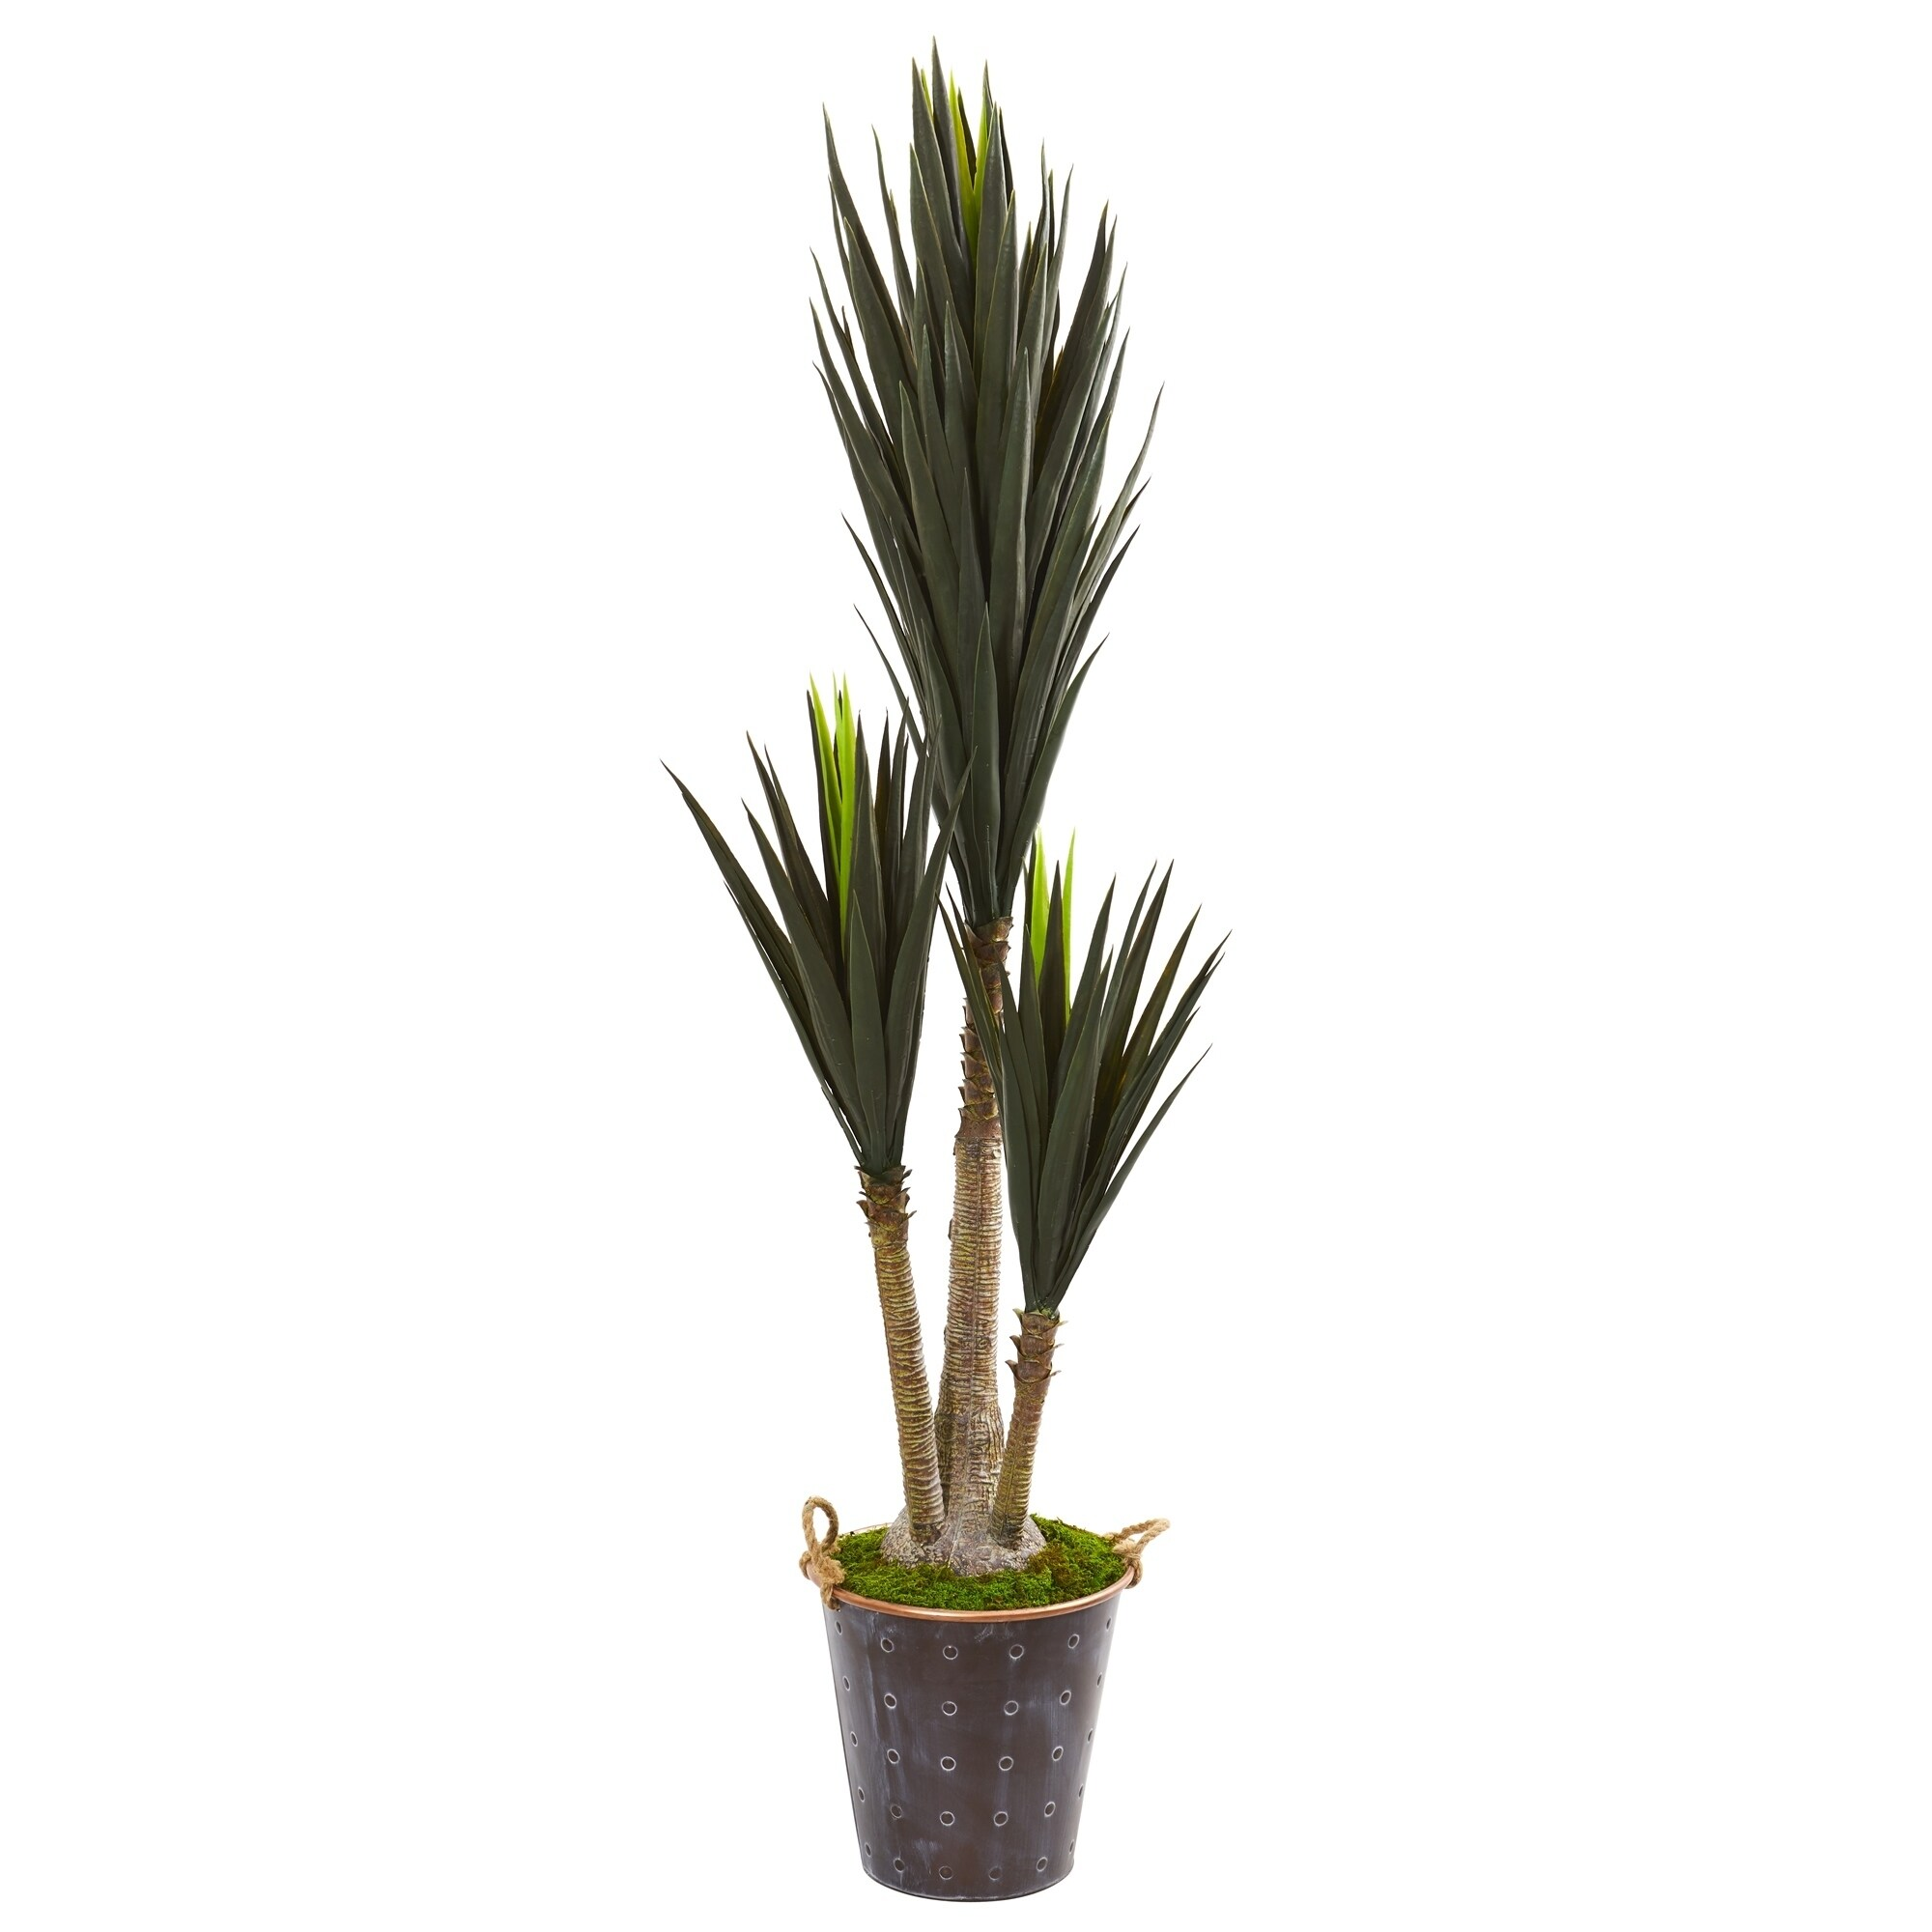 70 Yucca Artificial Plant in Metal Planter